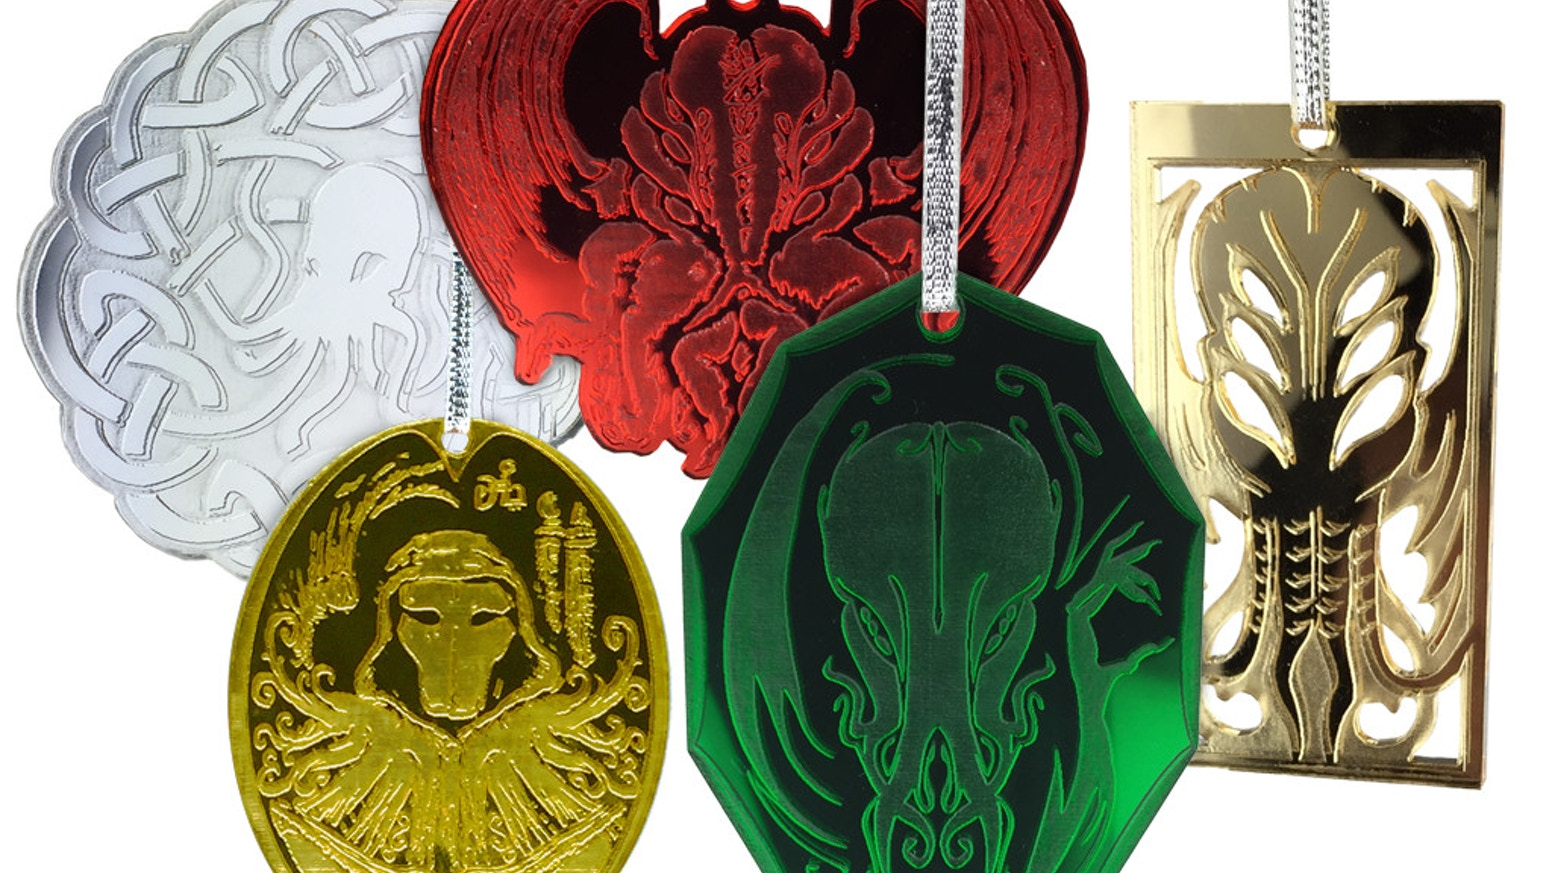 Cthulhu Holiday Ornaments: Lovecraft Horror on your tree by Arkham ...